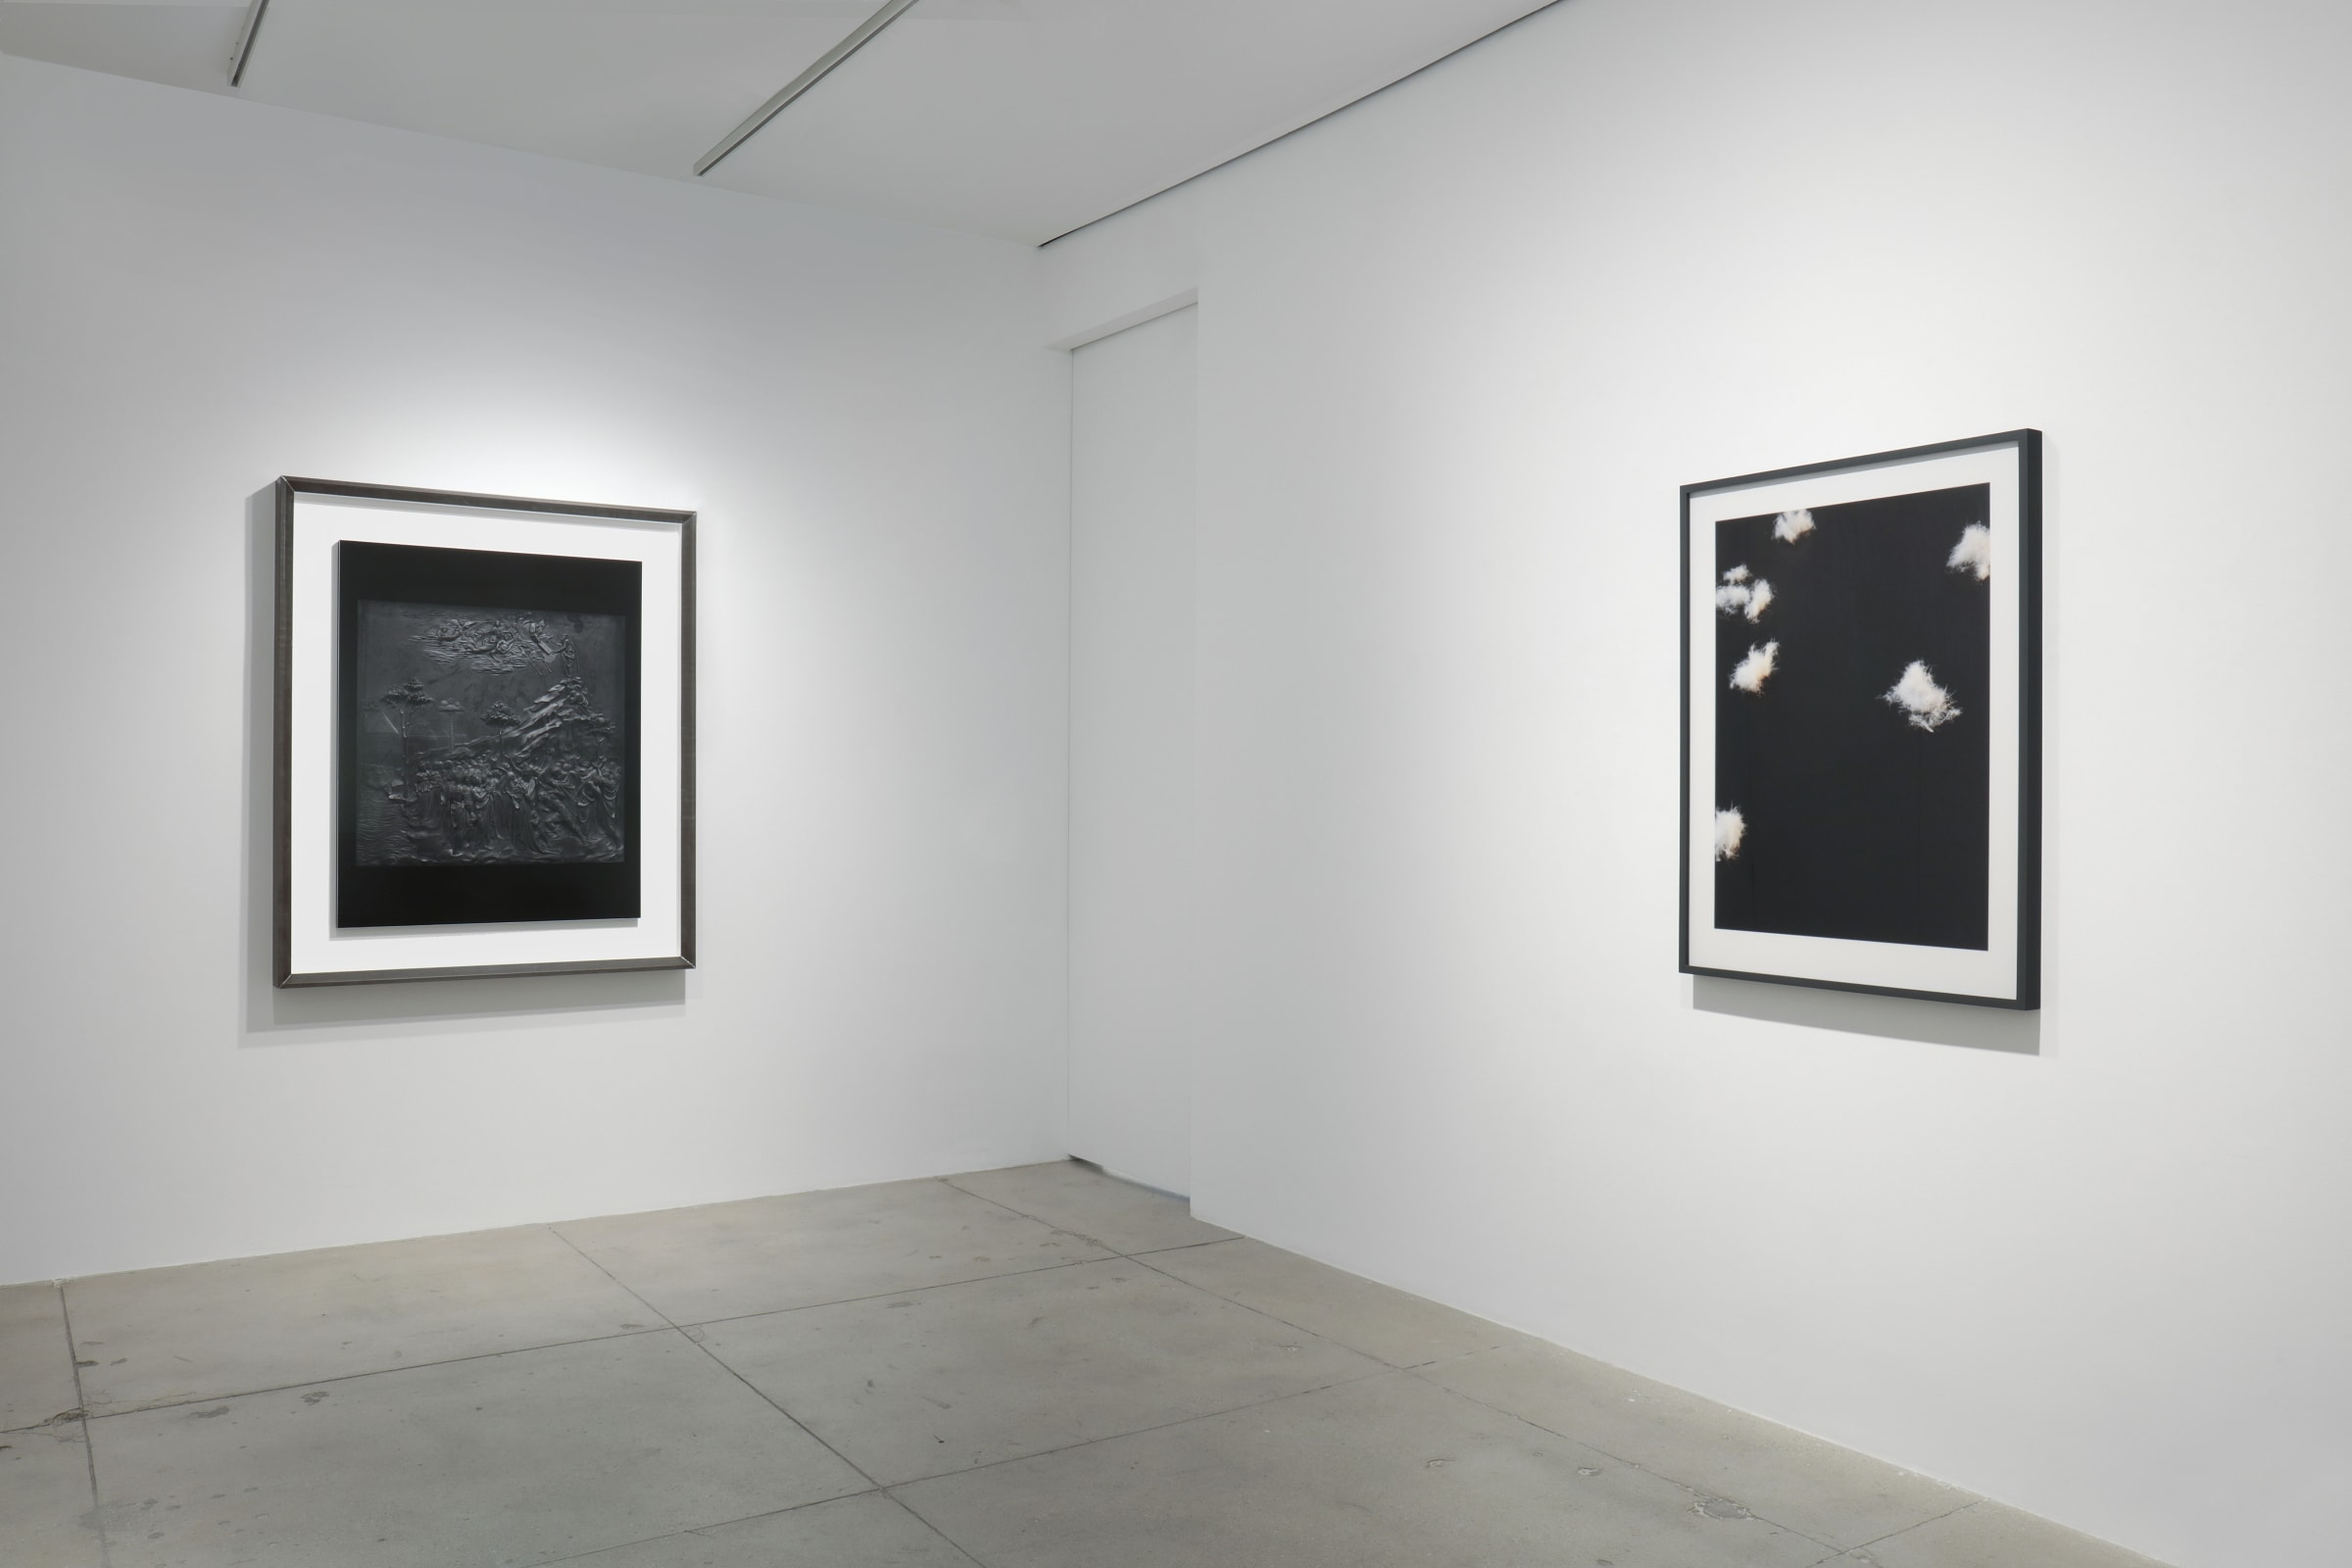 2 framed artworks hang in the corner of a white room. On the left appears to be an embossed landscape, while on the right is a black and white photograph of clouds.